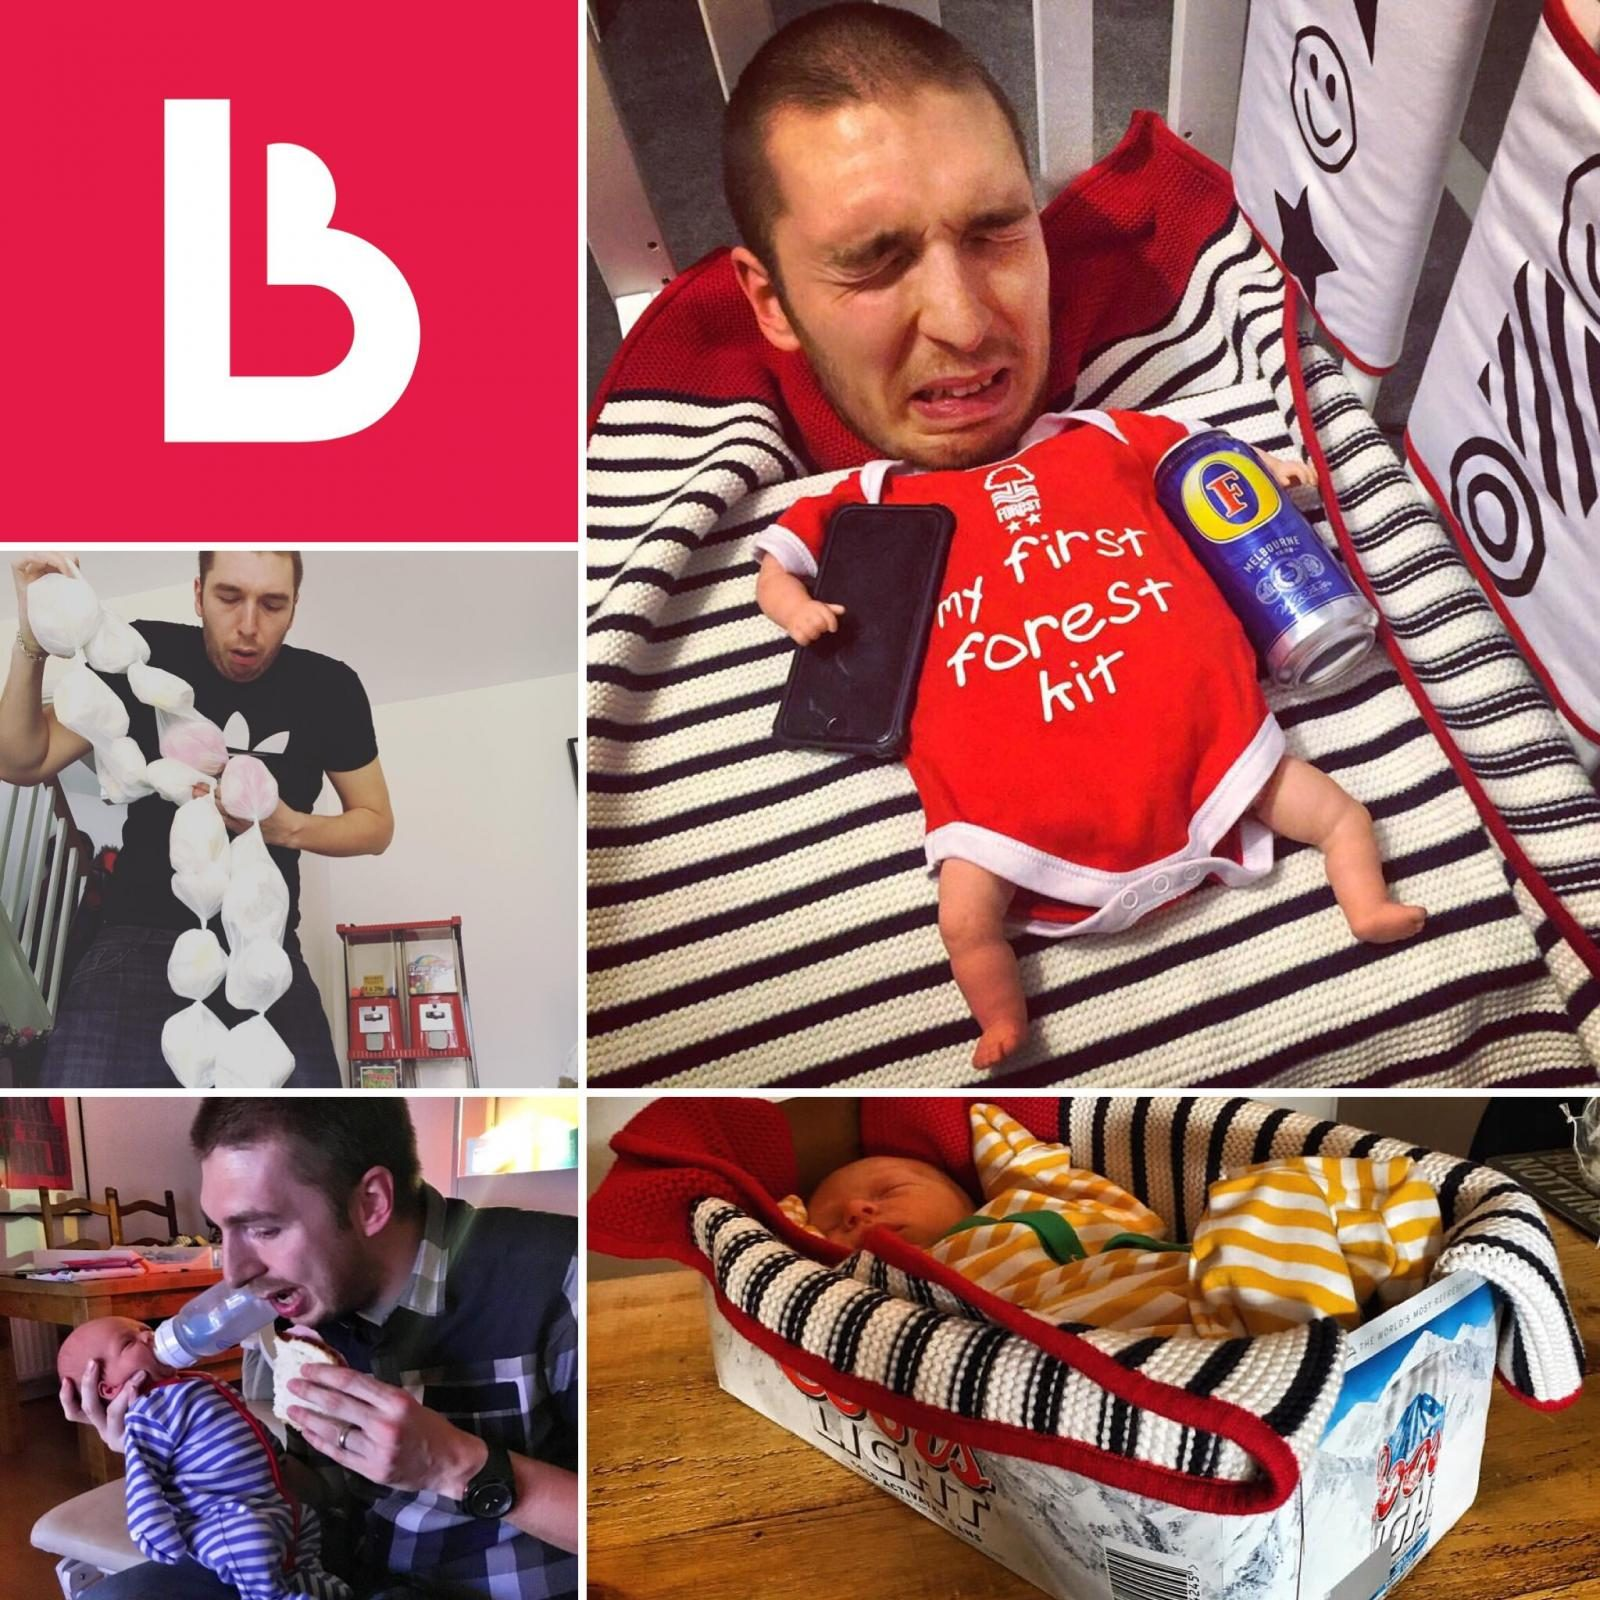 First time parents – interviews from the front line: featuring new dad Mark from Lad Baby